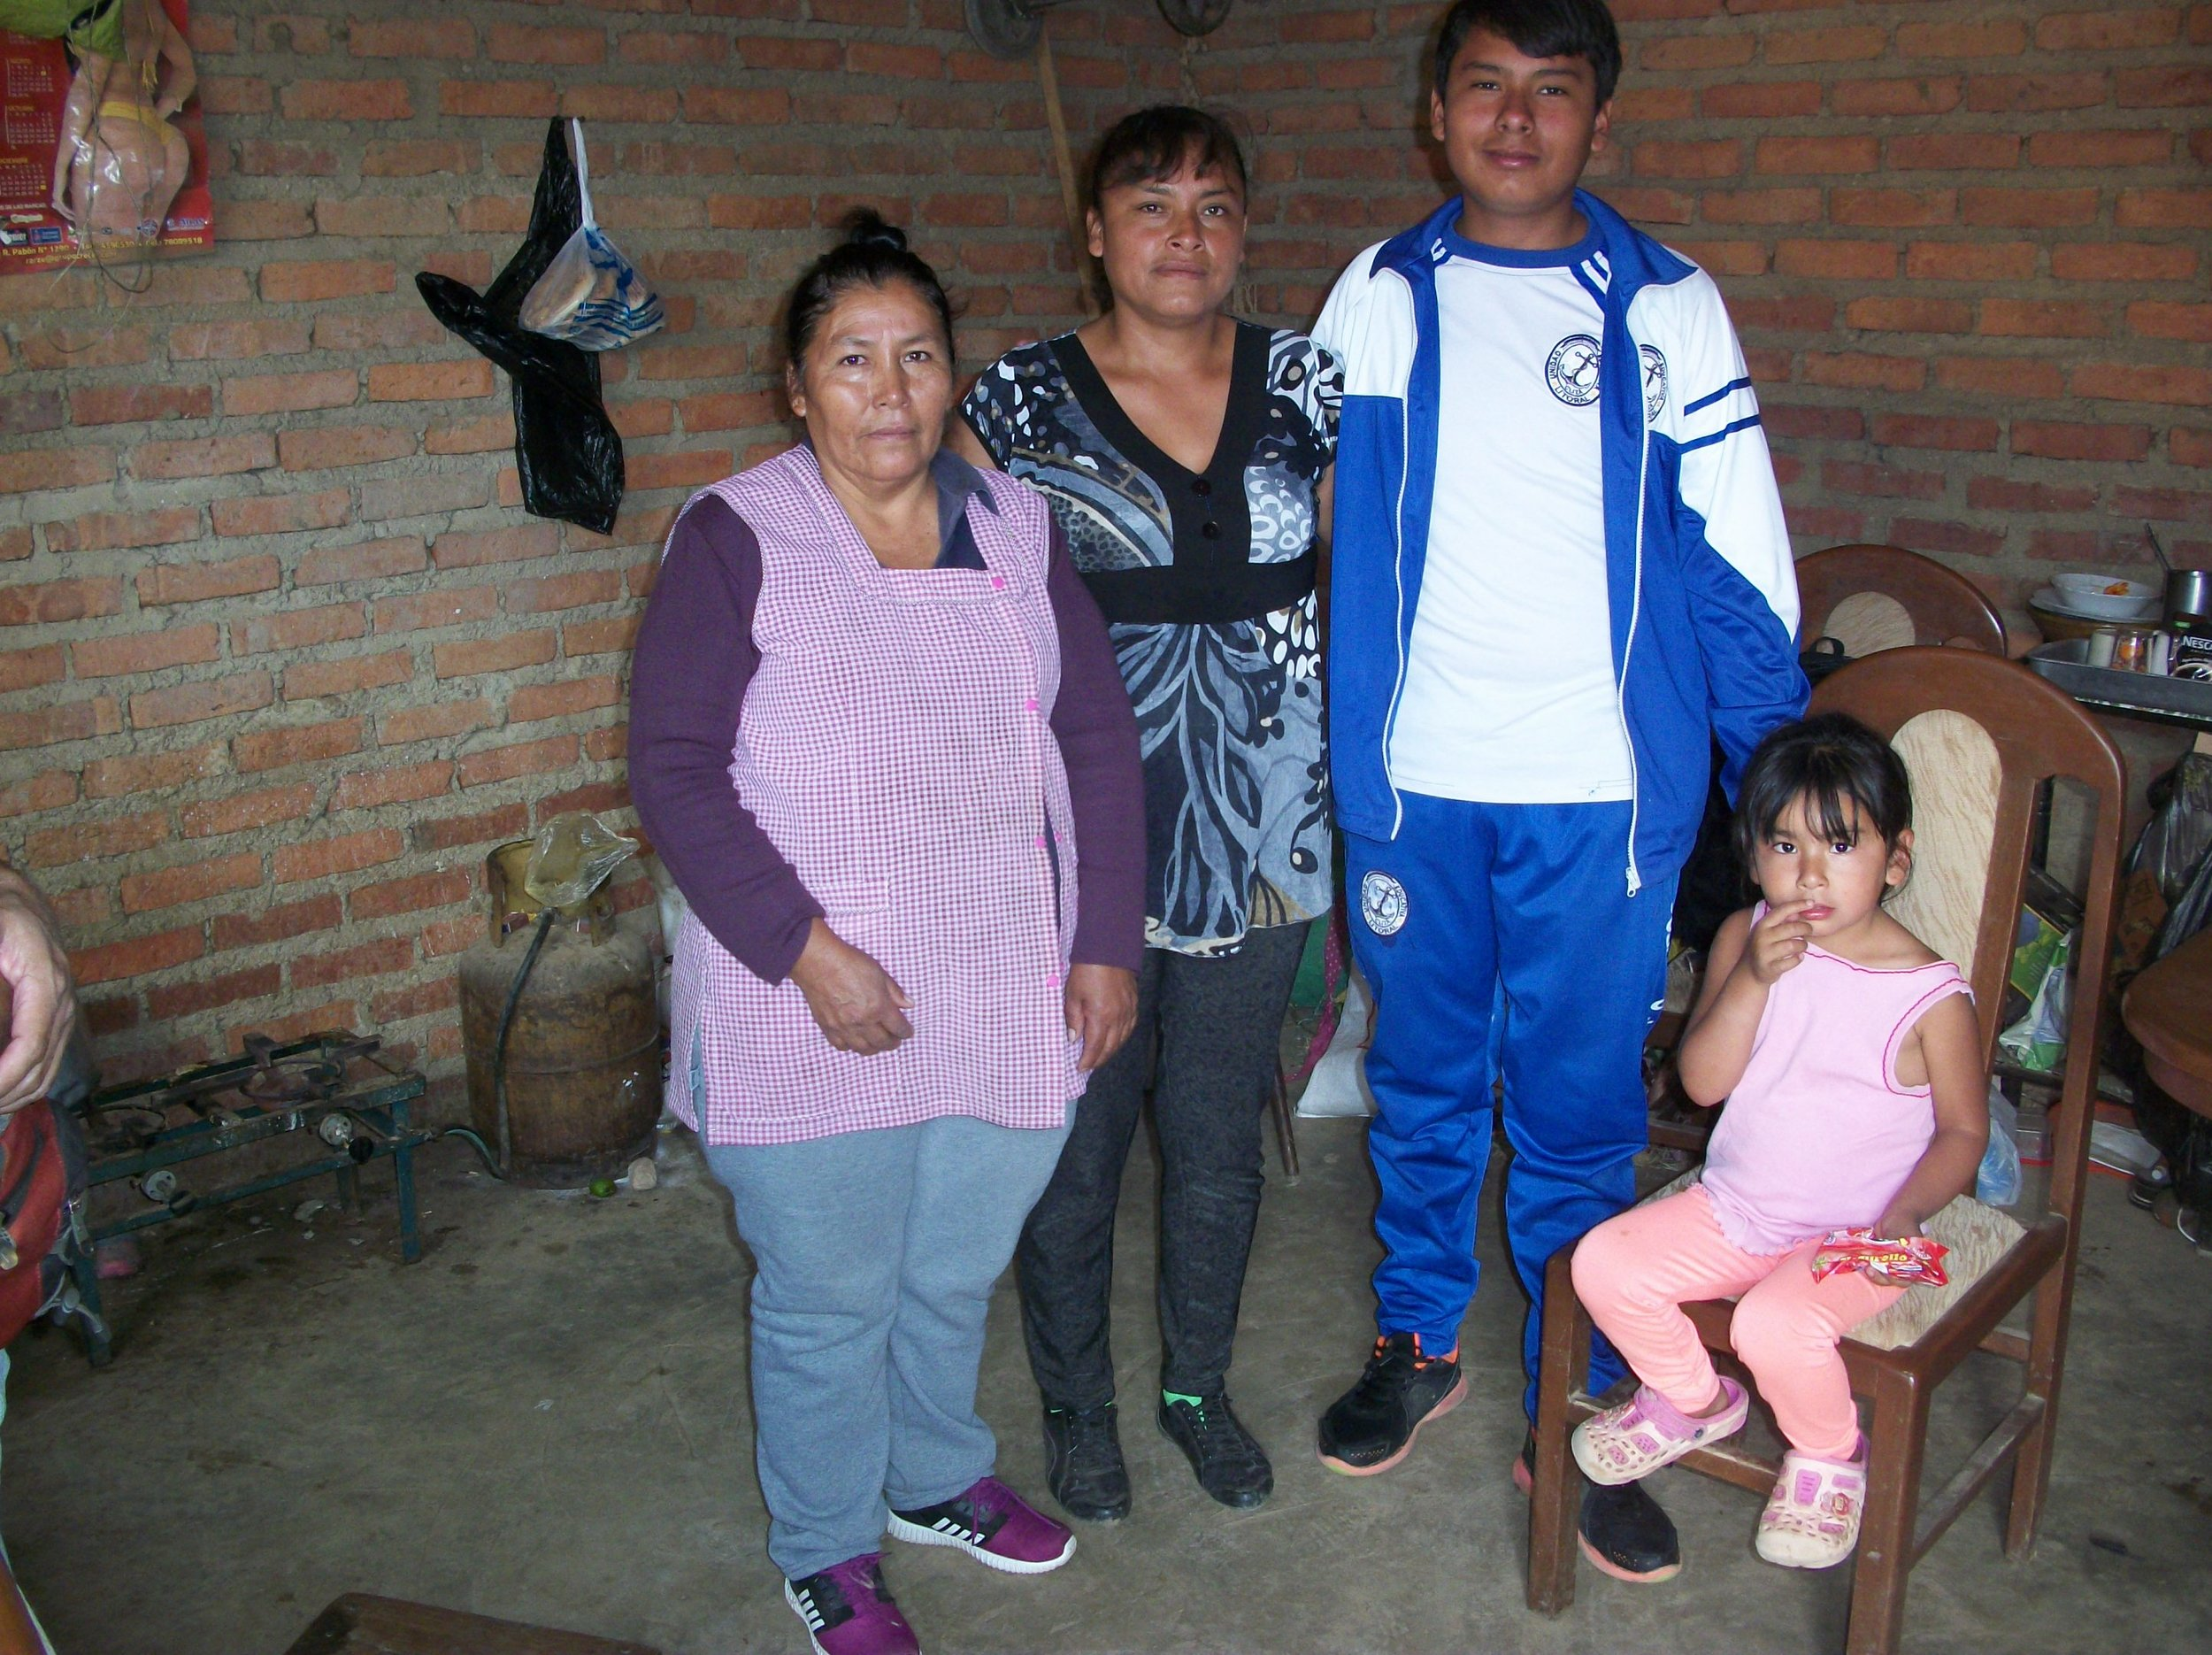 Luis, 14 - Luis's family was shocked to learn that their tall and active 14-year-old urgently needed a pacemaker to manage a previously-undiagnosed congenital heart defect. Luis is thrilled to be back at school and helping care for his little sisters since receiving his new pacemaker.